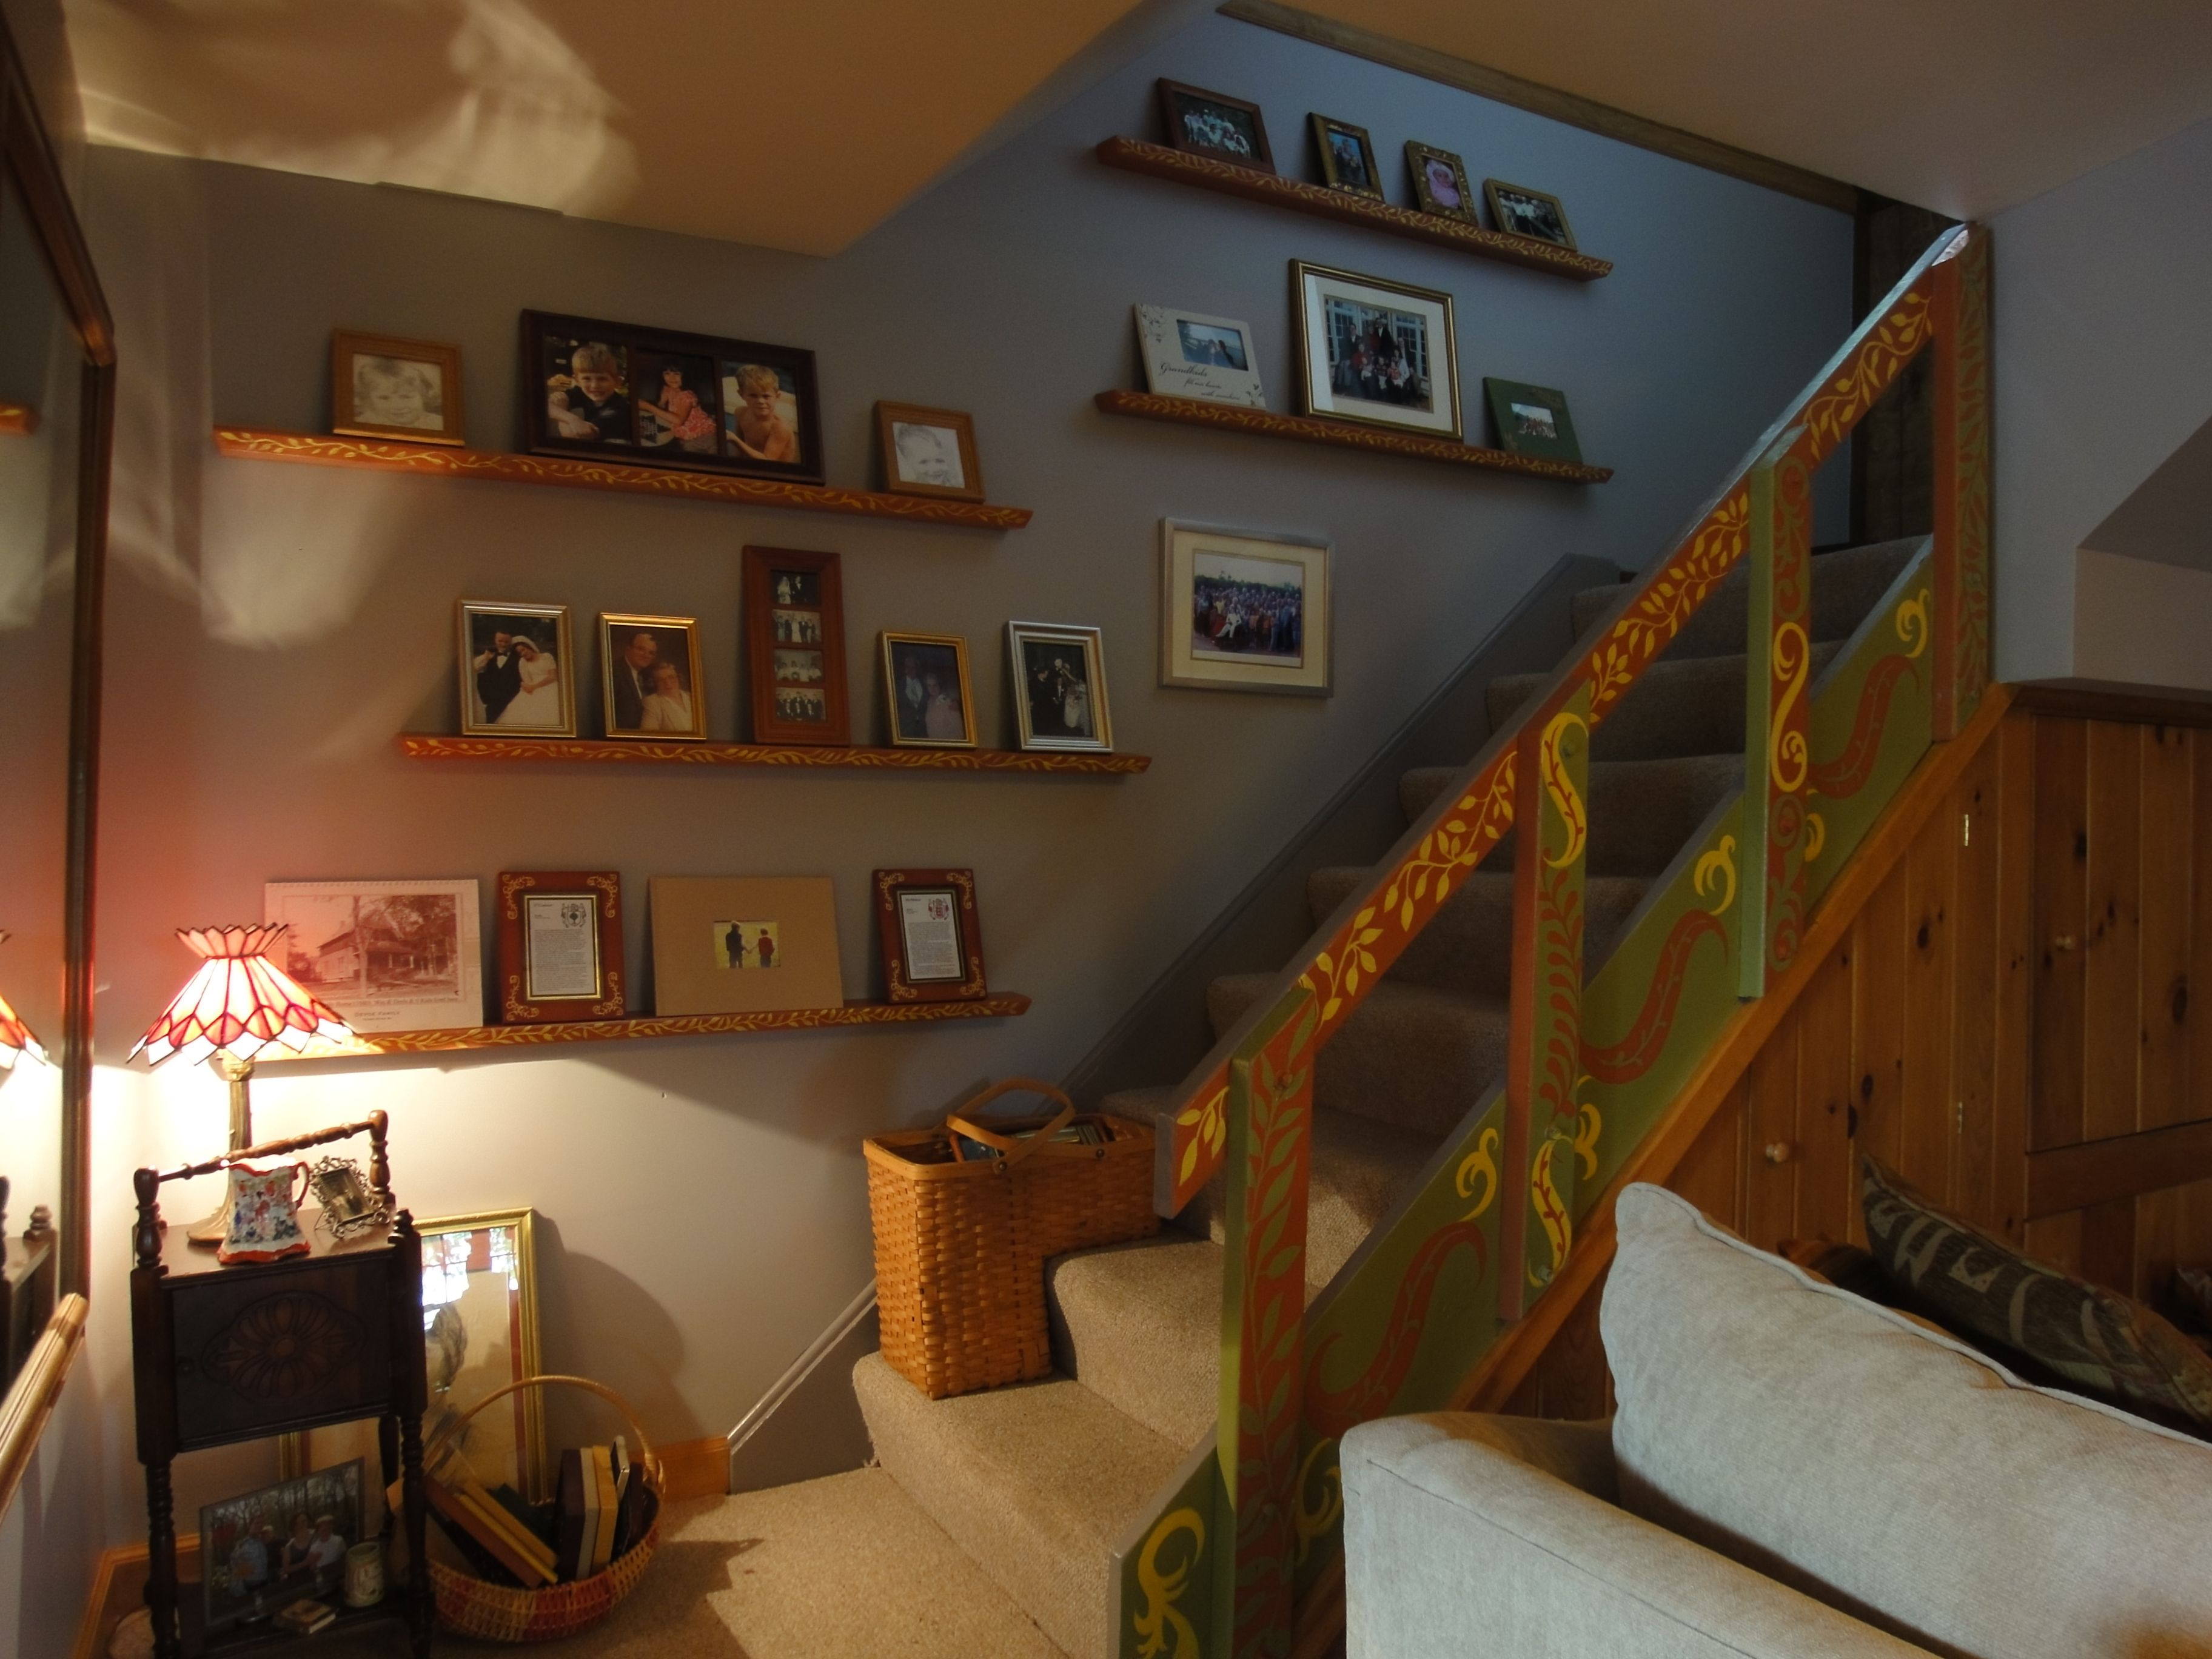 Rosemary prock sows ear studio schenectady new york turned a dark stairway into a fanciful piece of art she coordinated her russian dacha stairway